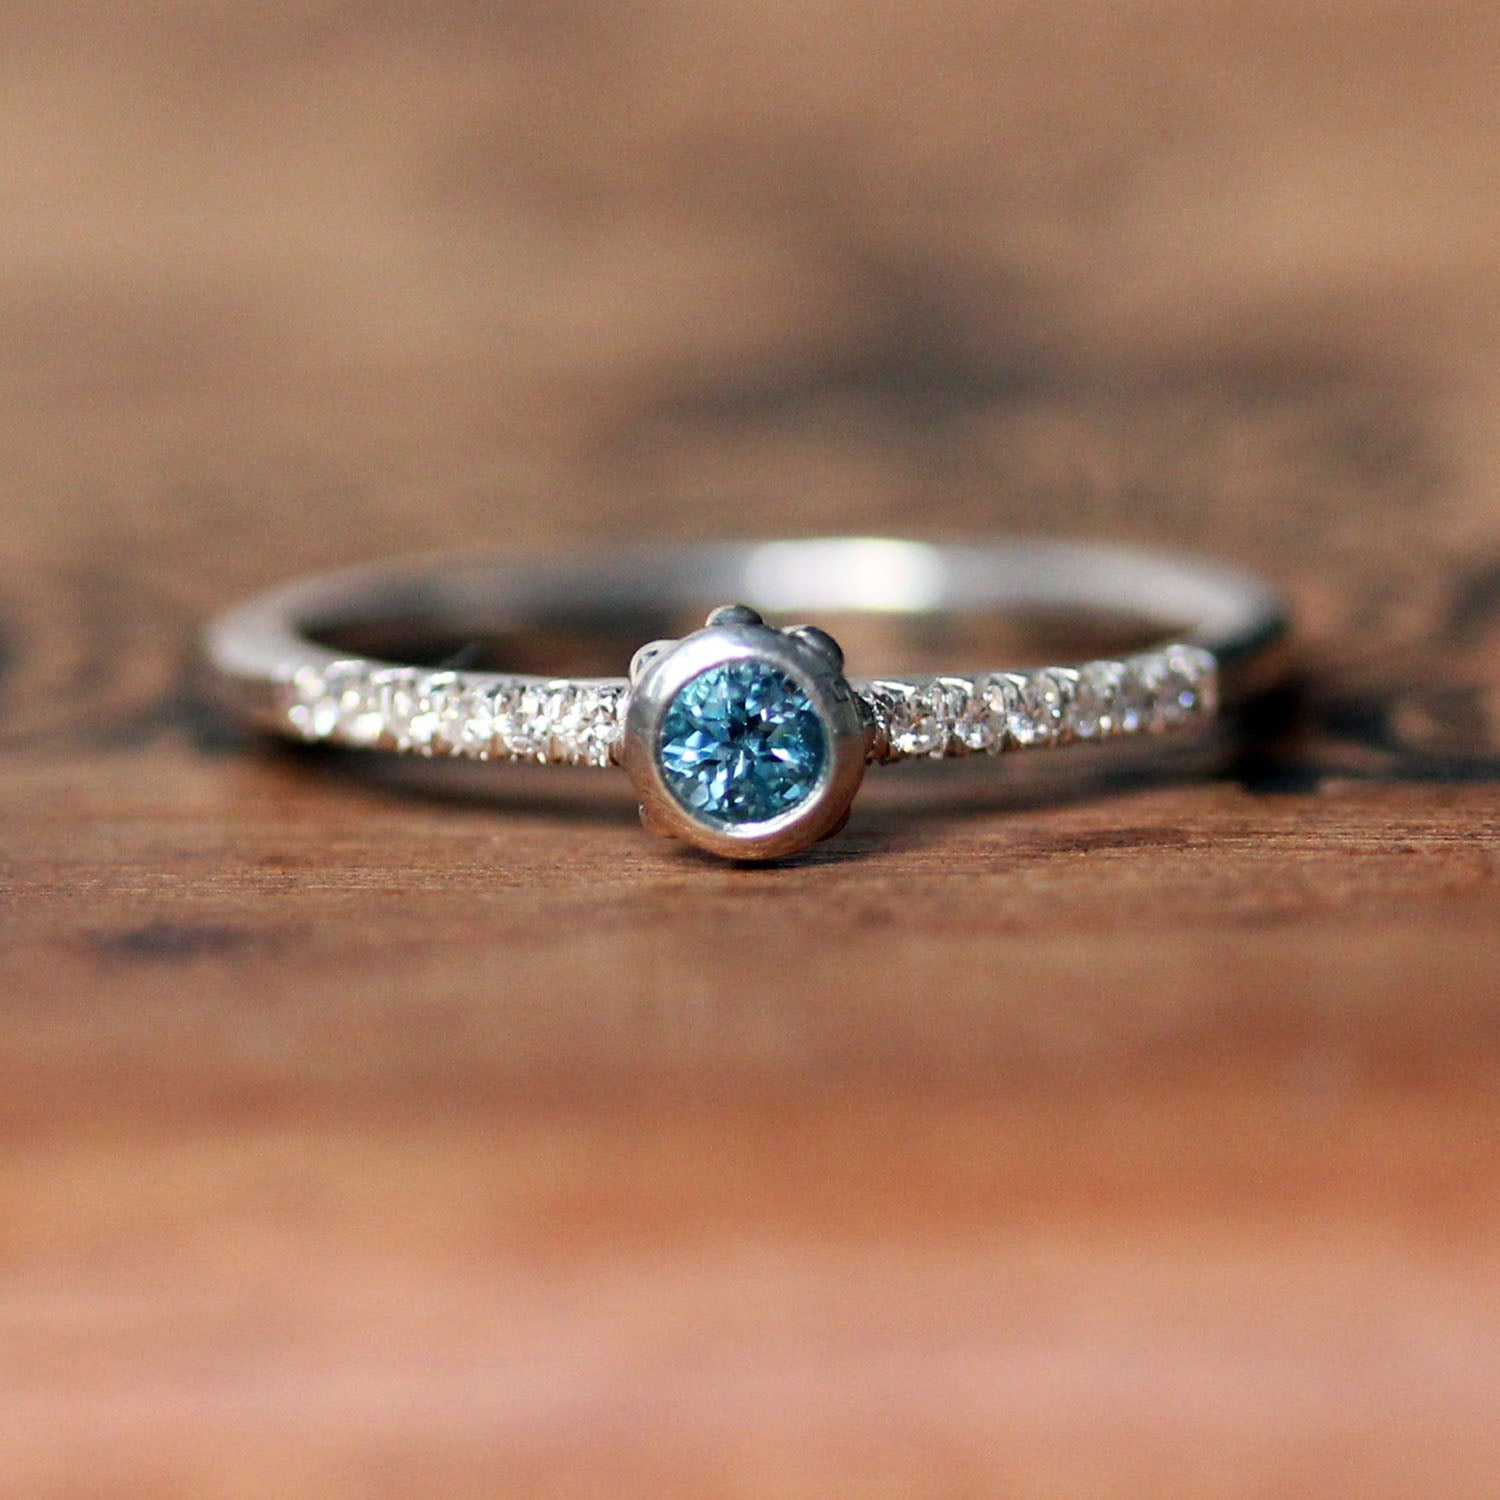 Birthstone Stacking Rings with Moissanite, Wrought